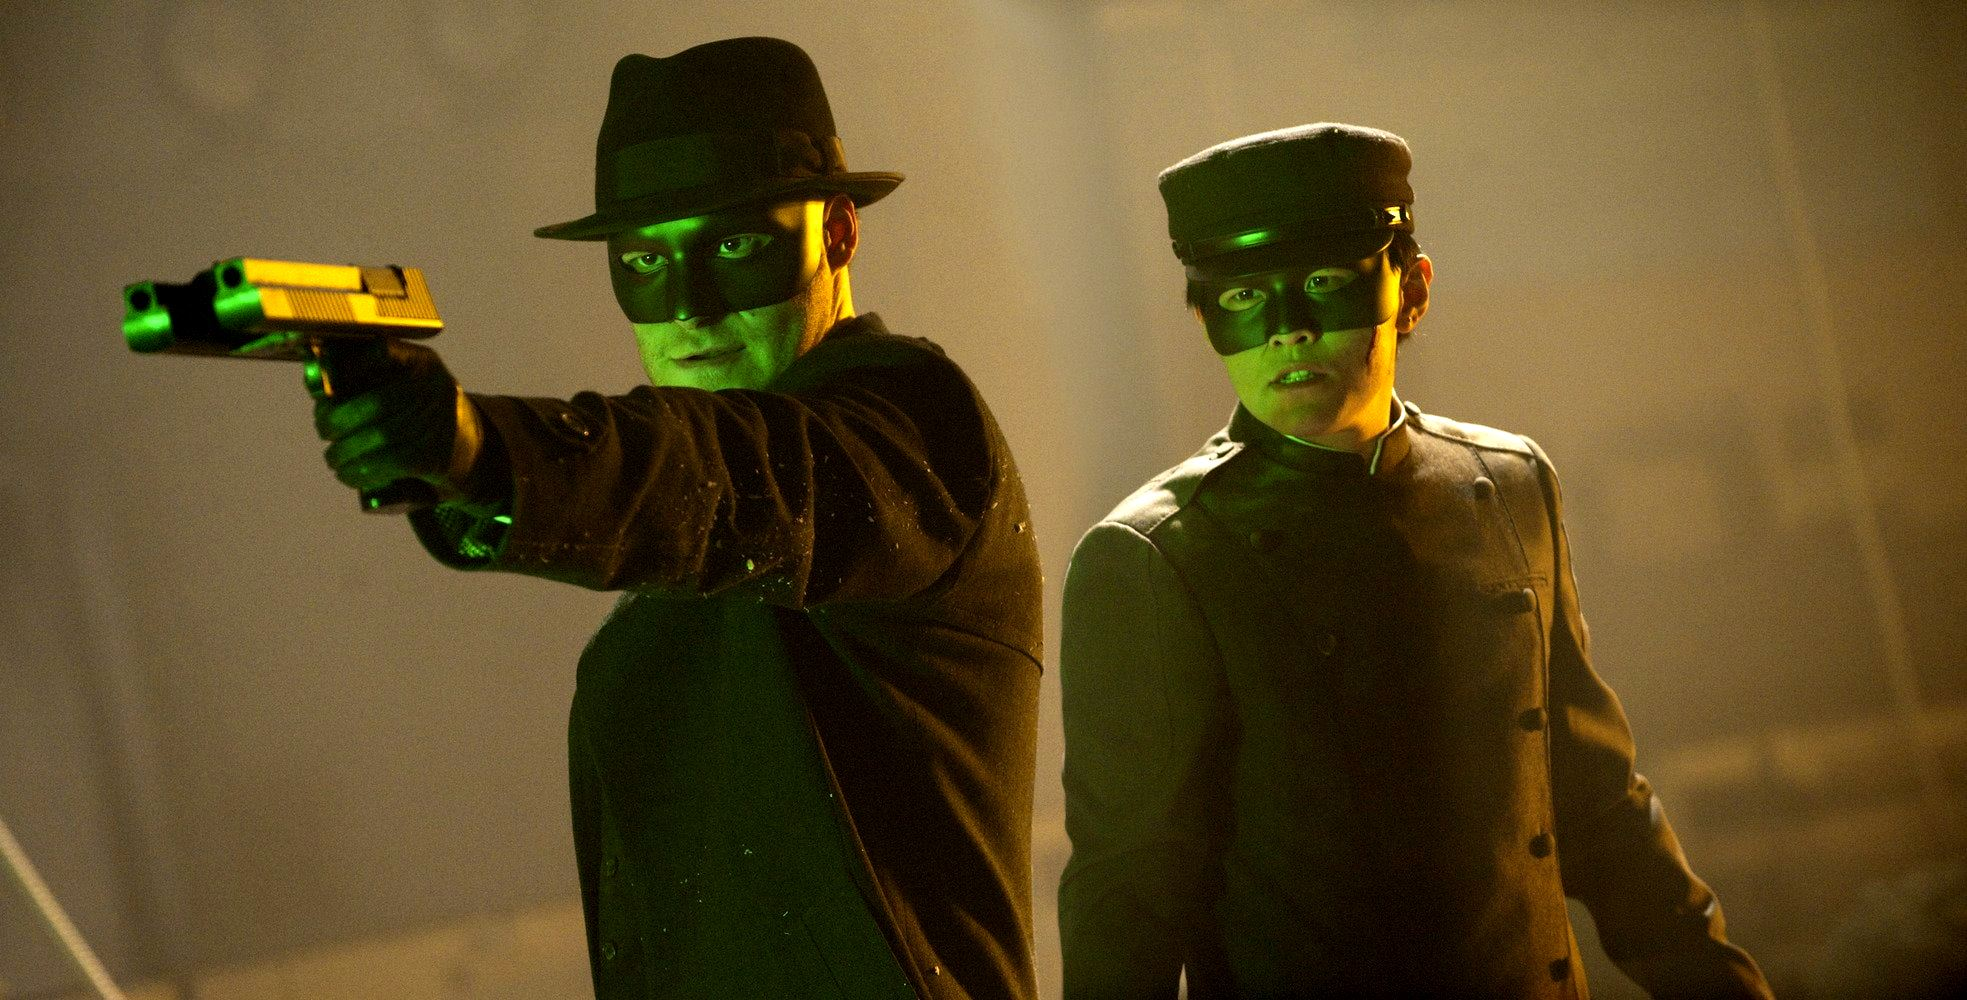 (l to r) The Green Hornet (Seth Rogen) and Kato (Jay Chou) in The Green Hornet (2011)